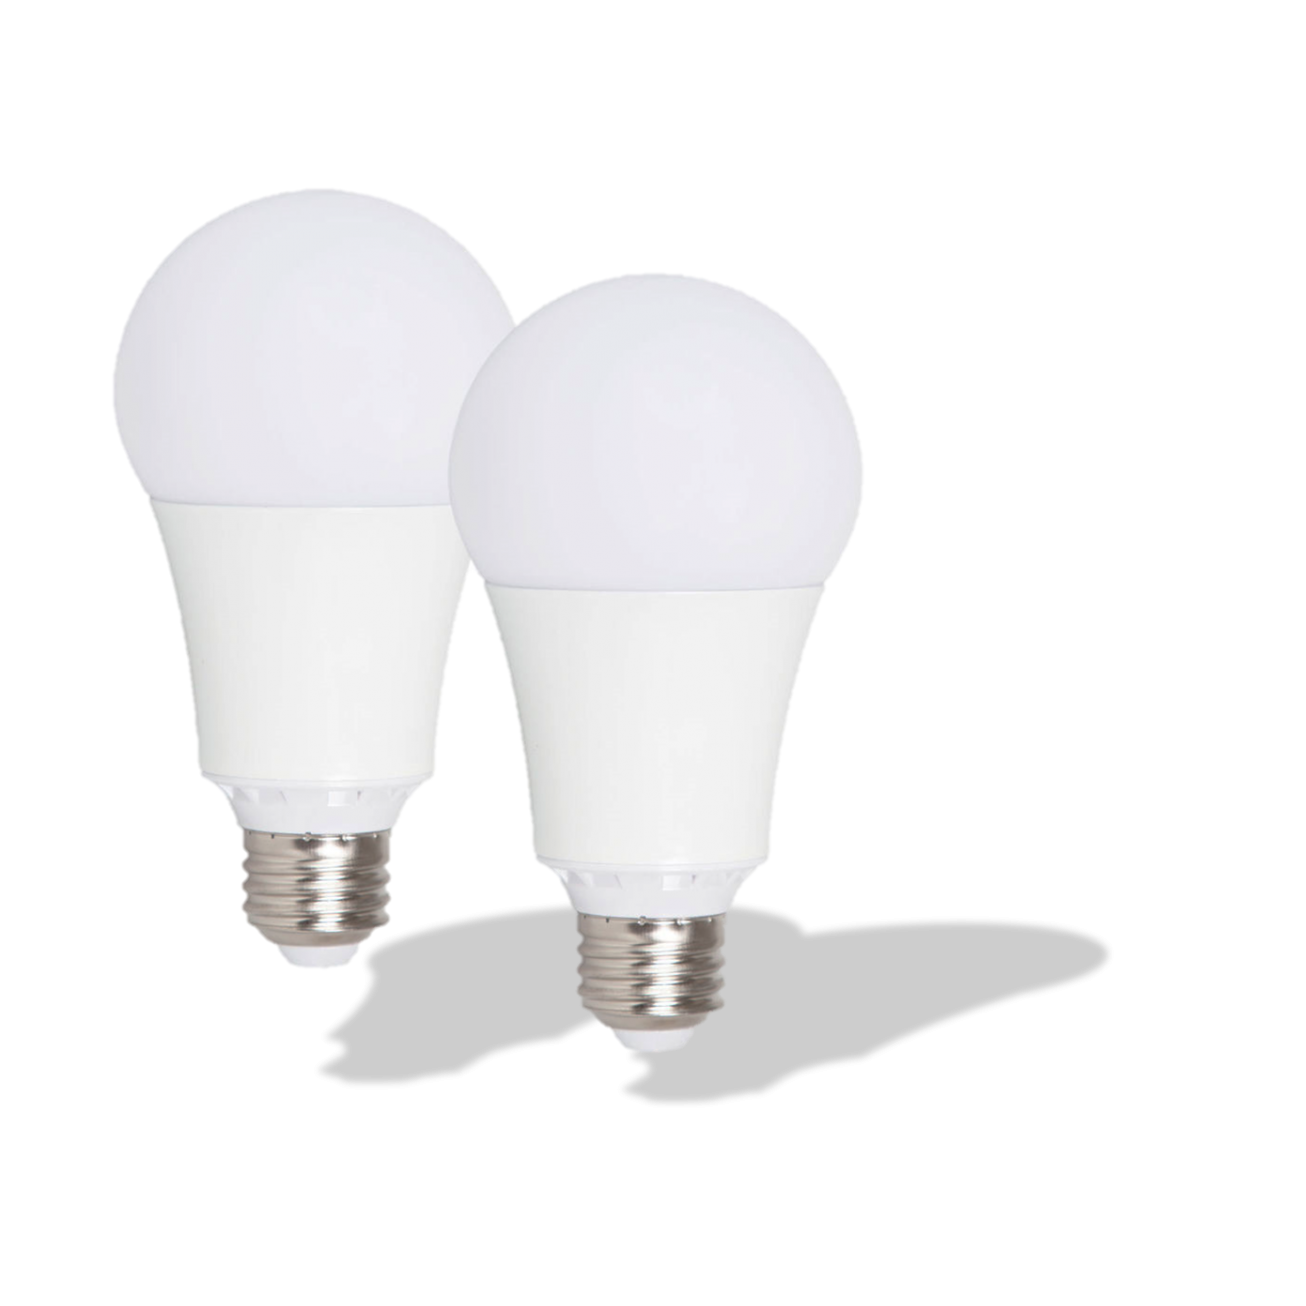 12w LED Residential A19 Bulb